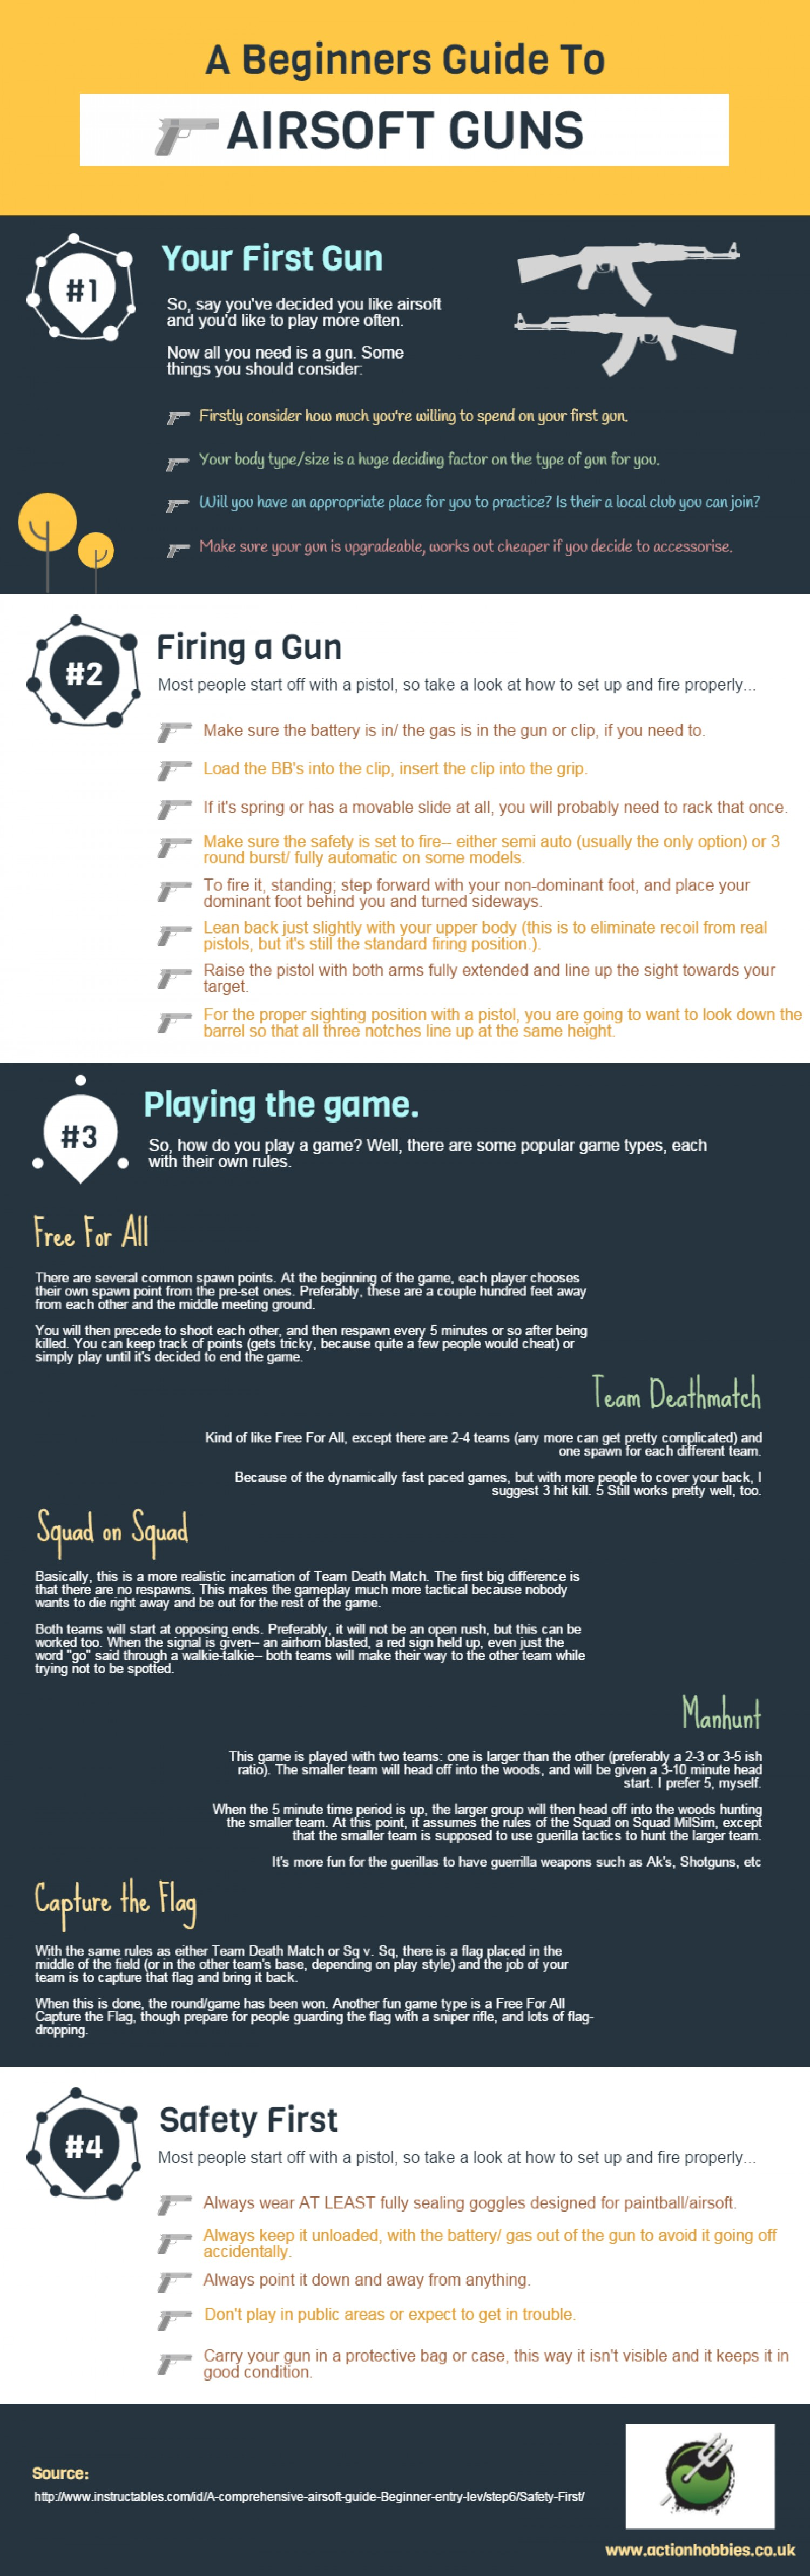 A Beginners Guide to Airsoft Guns Infographic